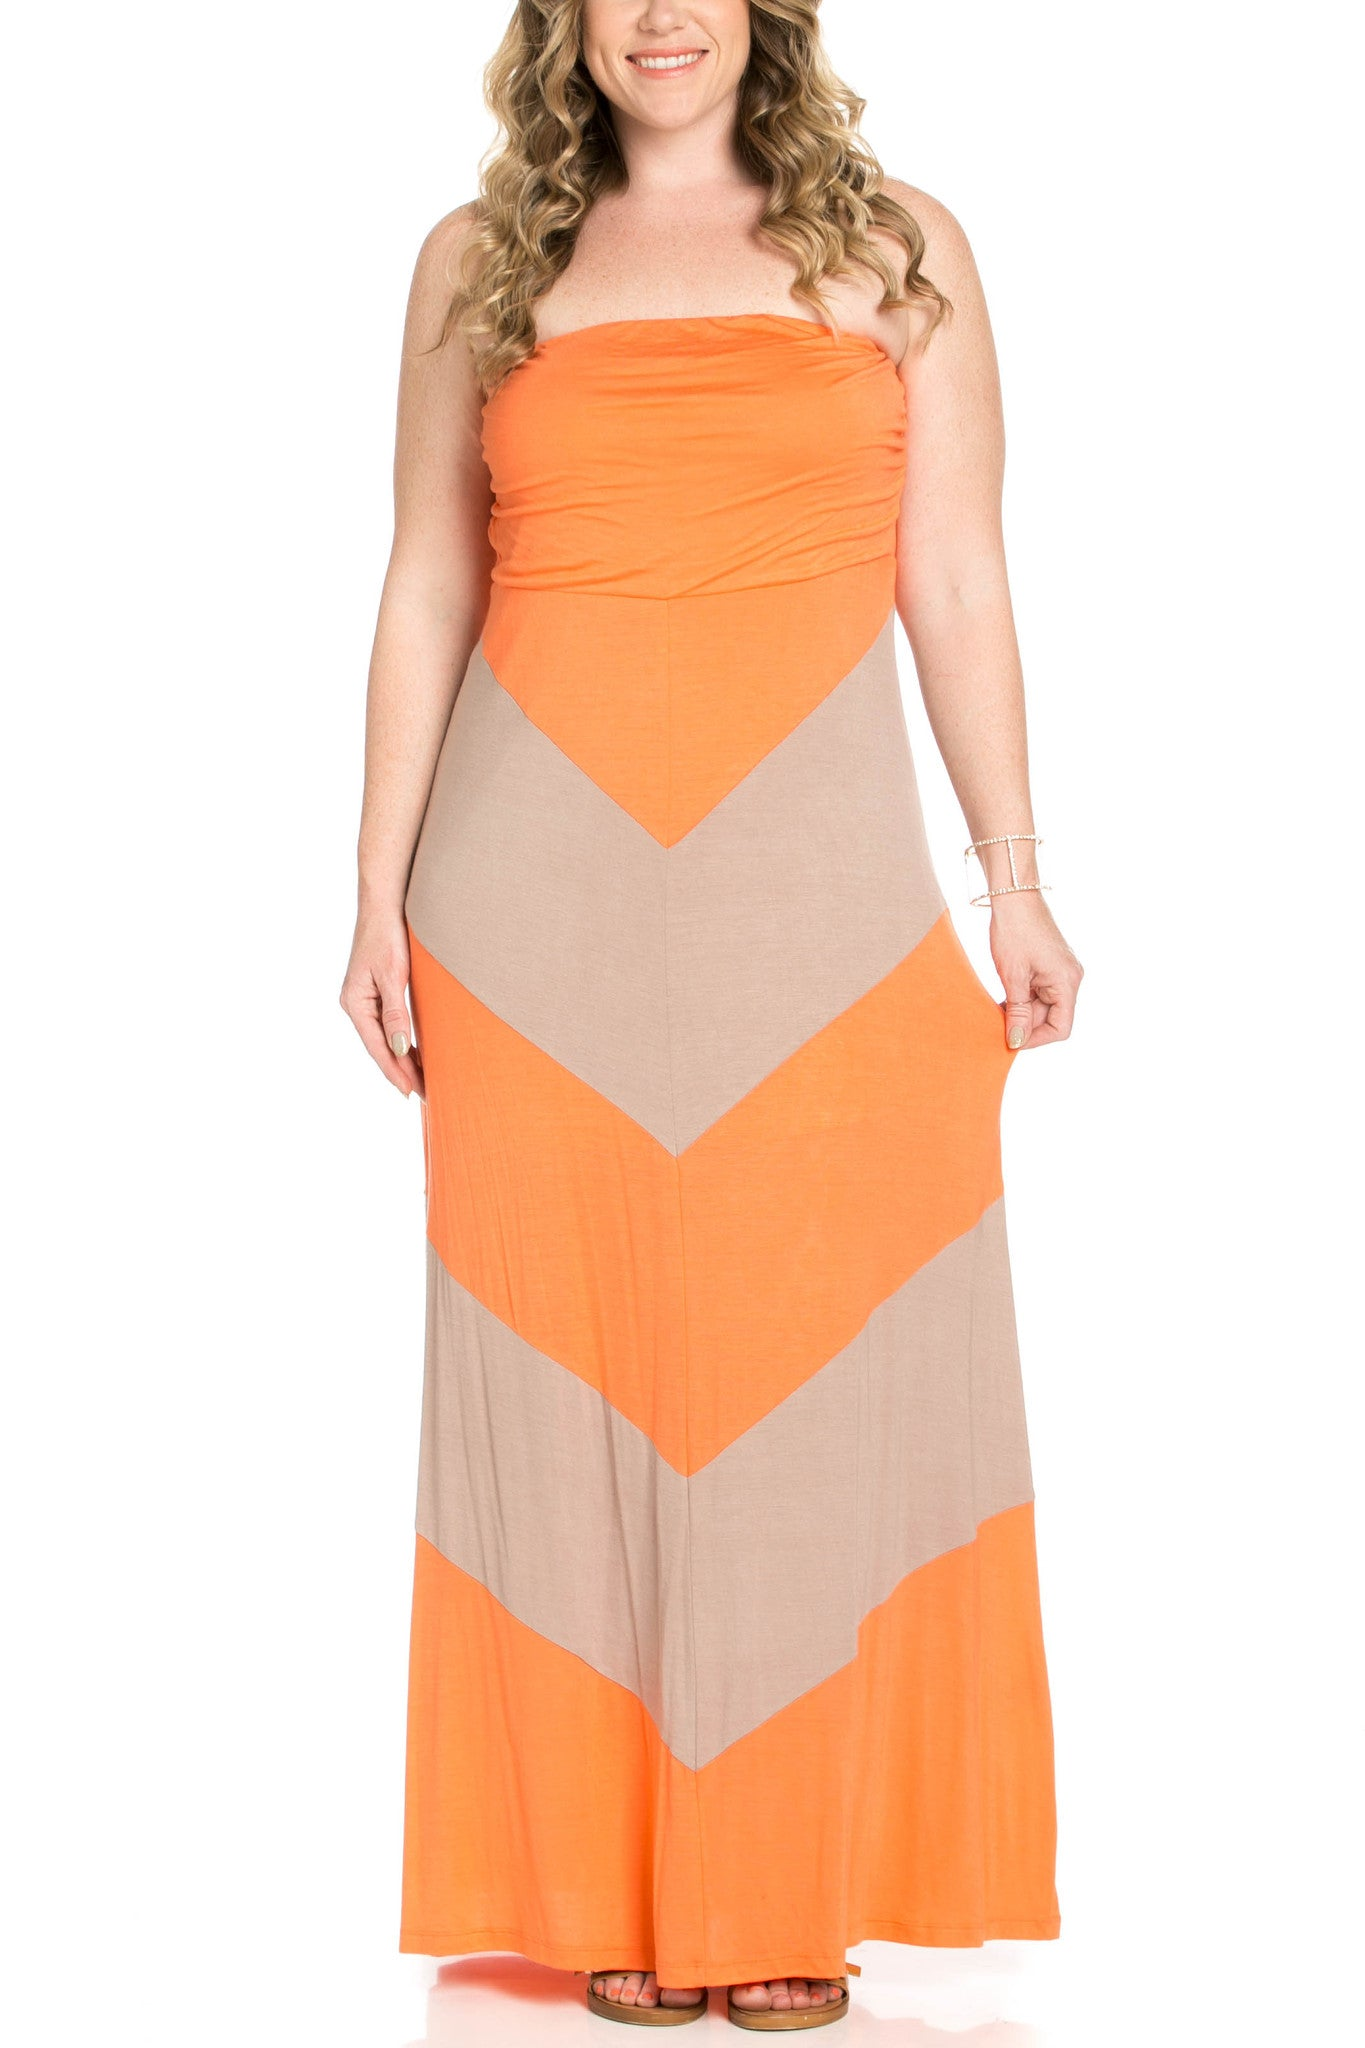 Strapless Long tube Dress Peach/Mocha Cause You're Chevron - Dresses - My Yuccie - 5